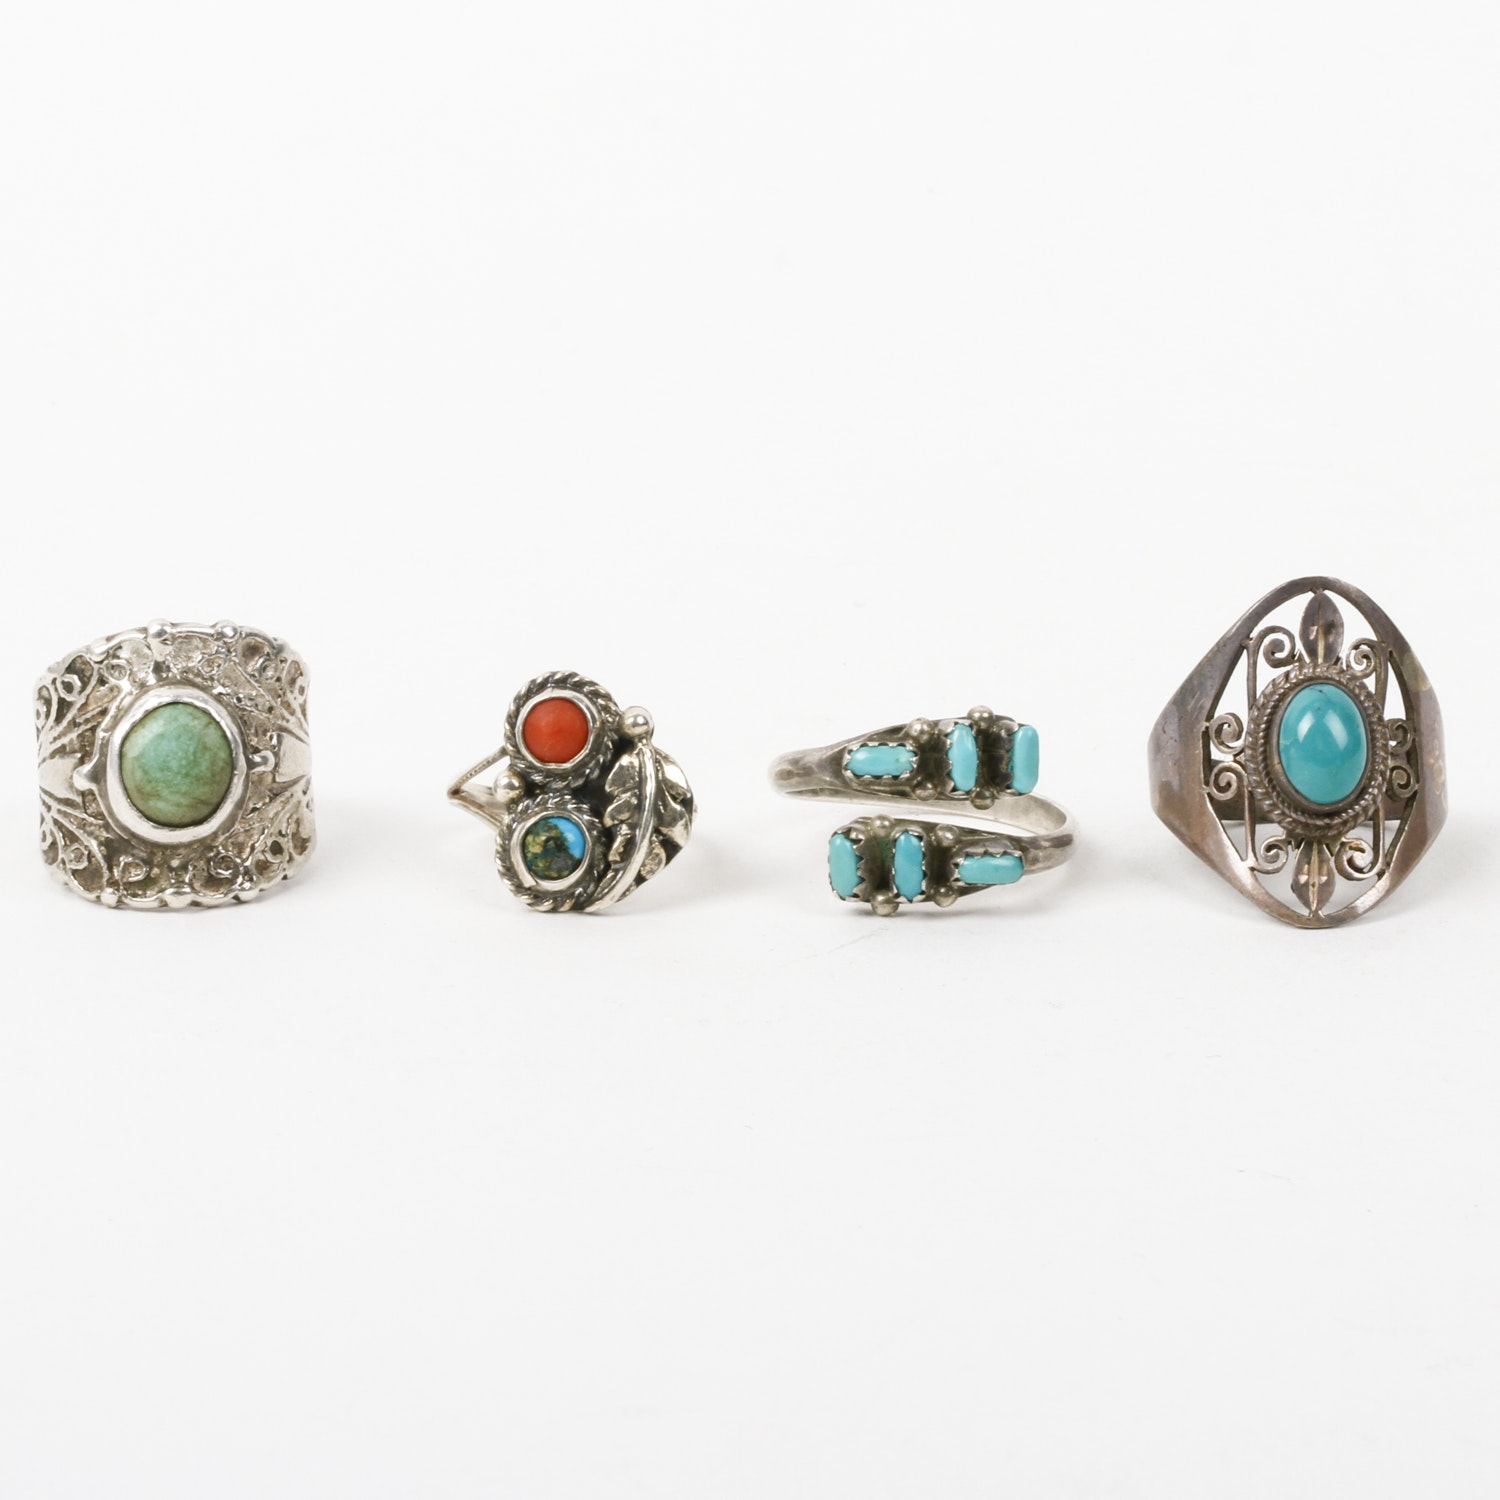 Assortment of Sterling Silver and Stone Rings